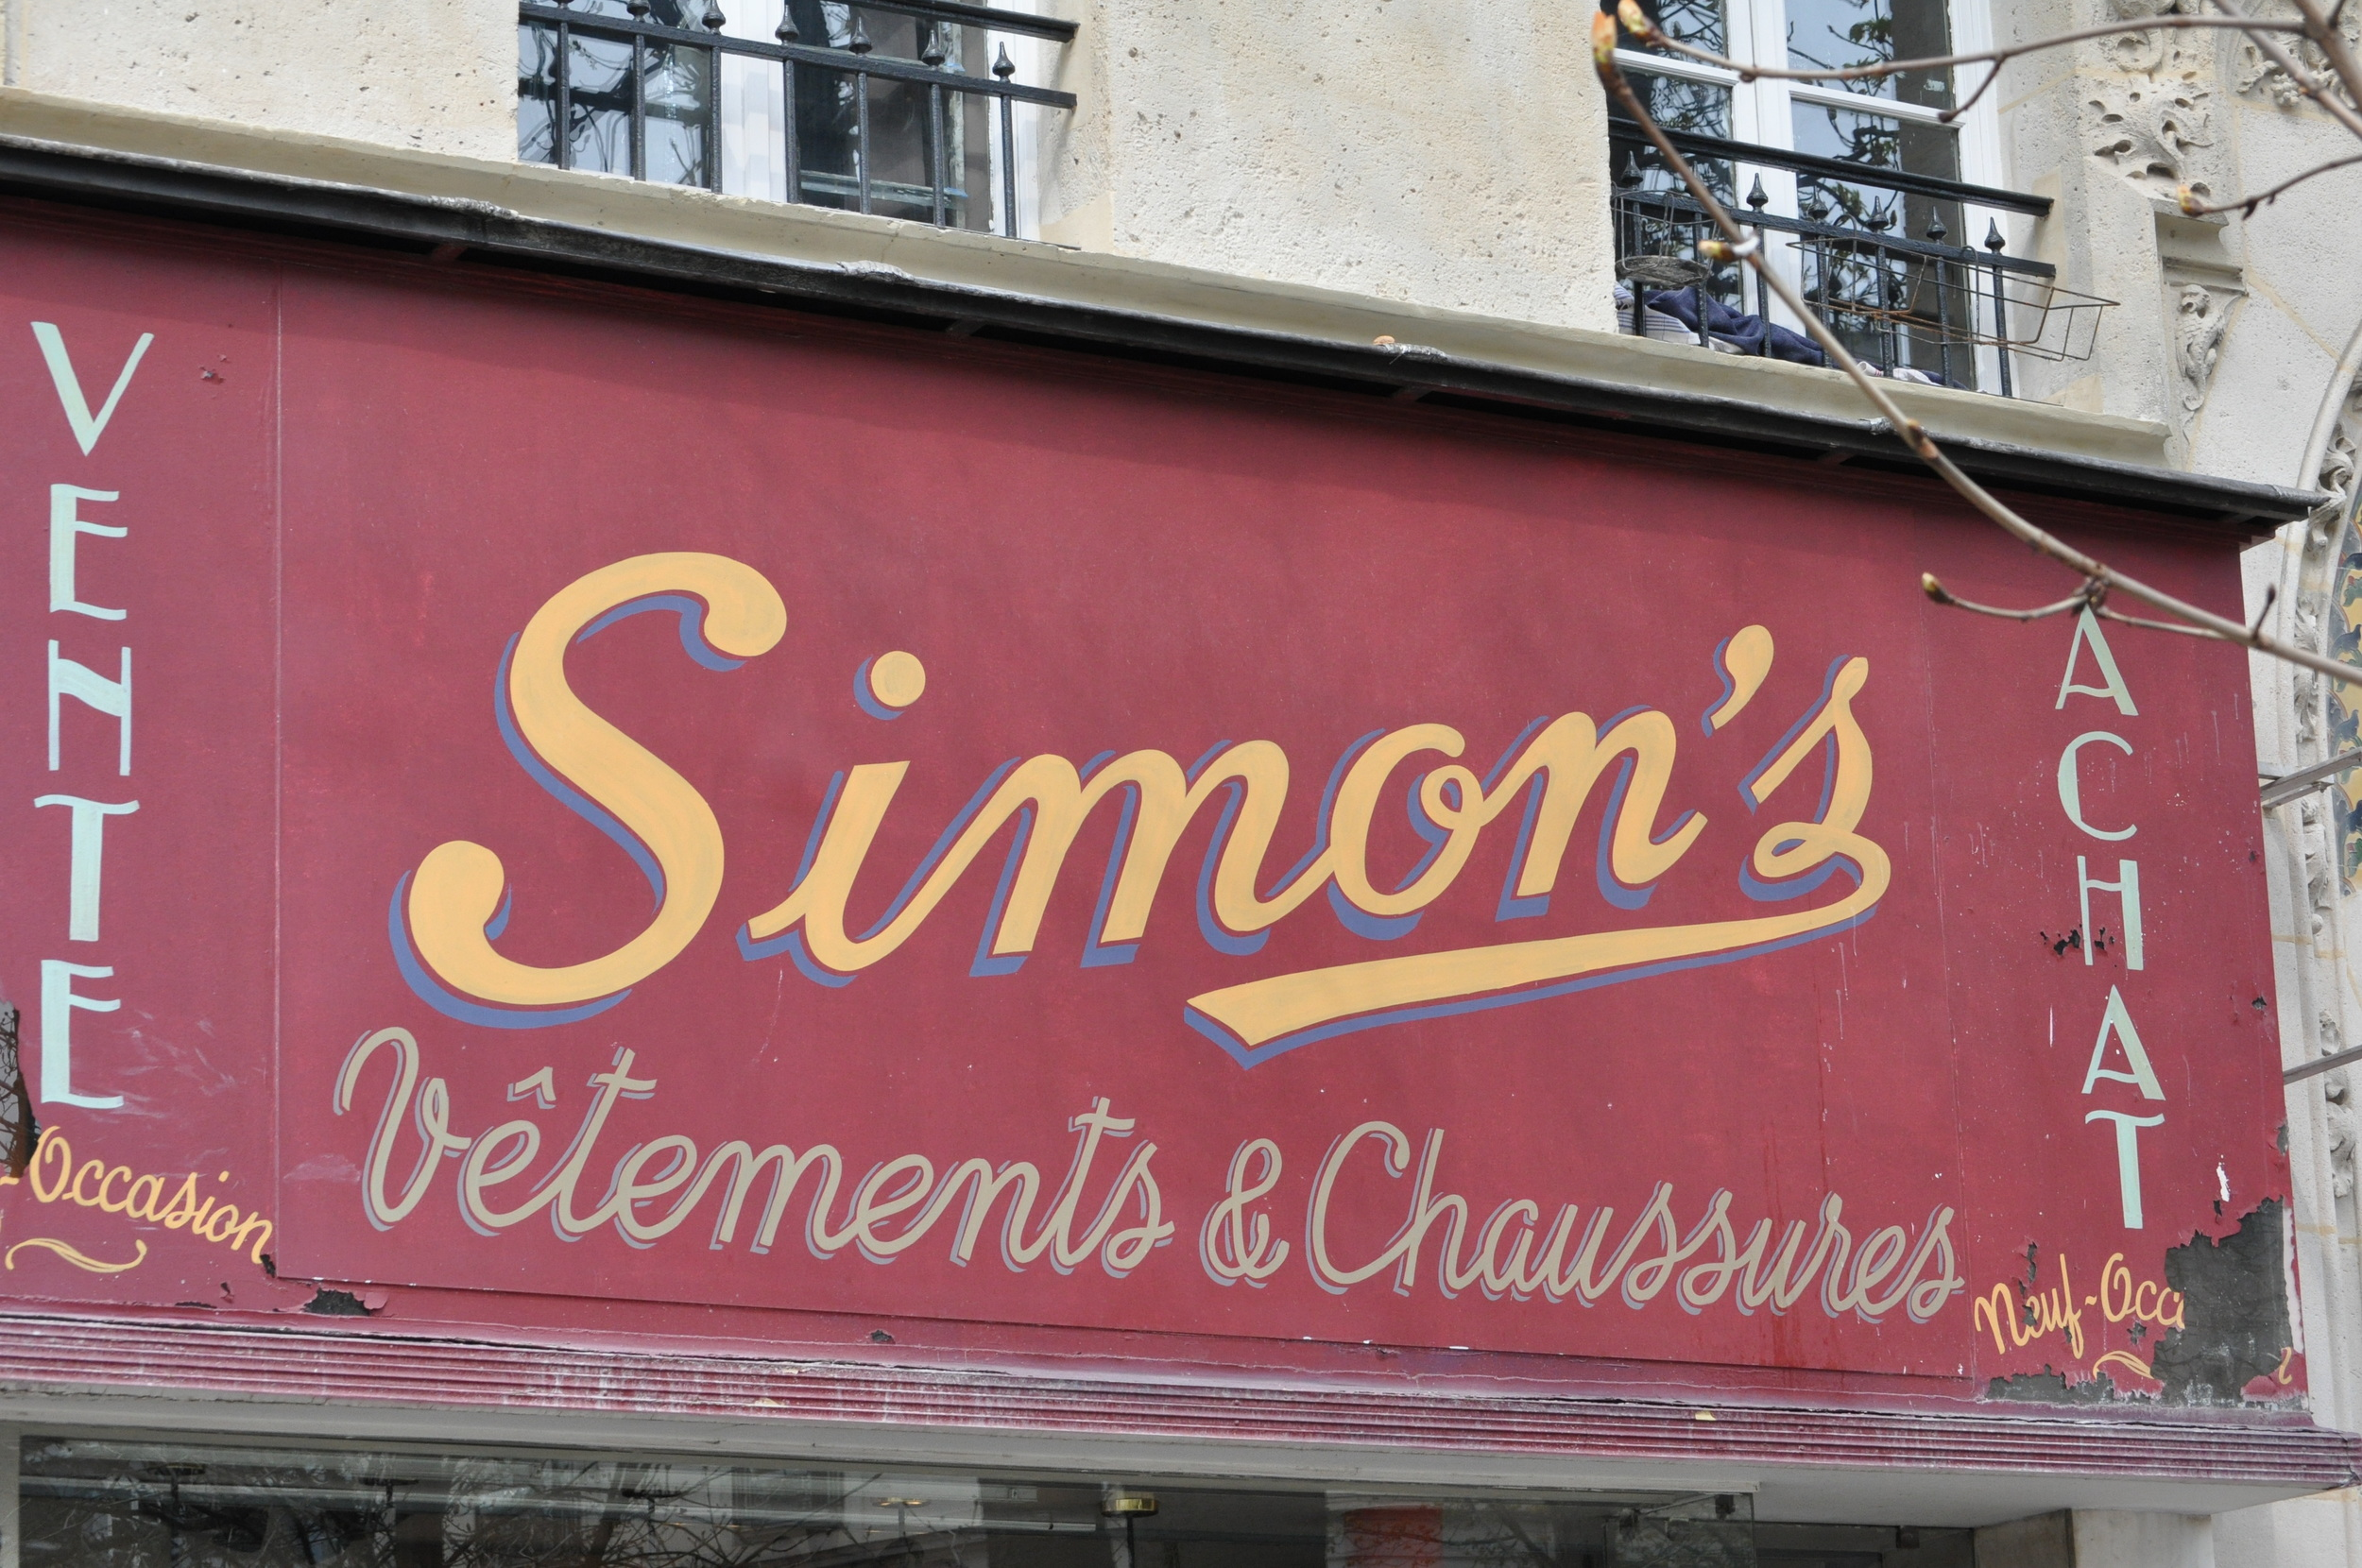 excellent example of what i consider classic signage - from france